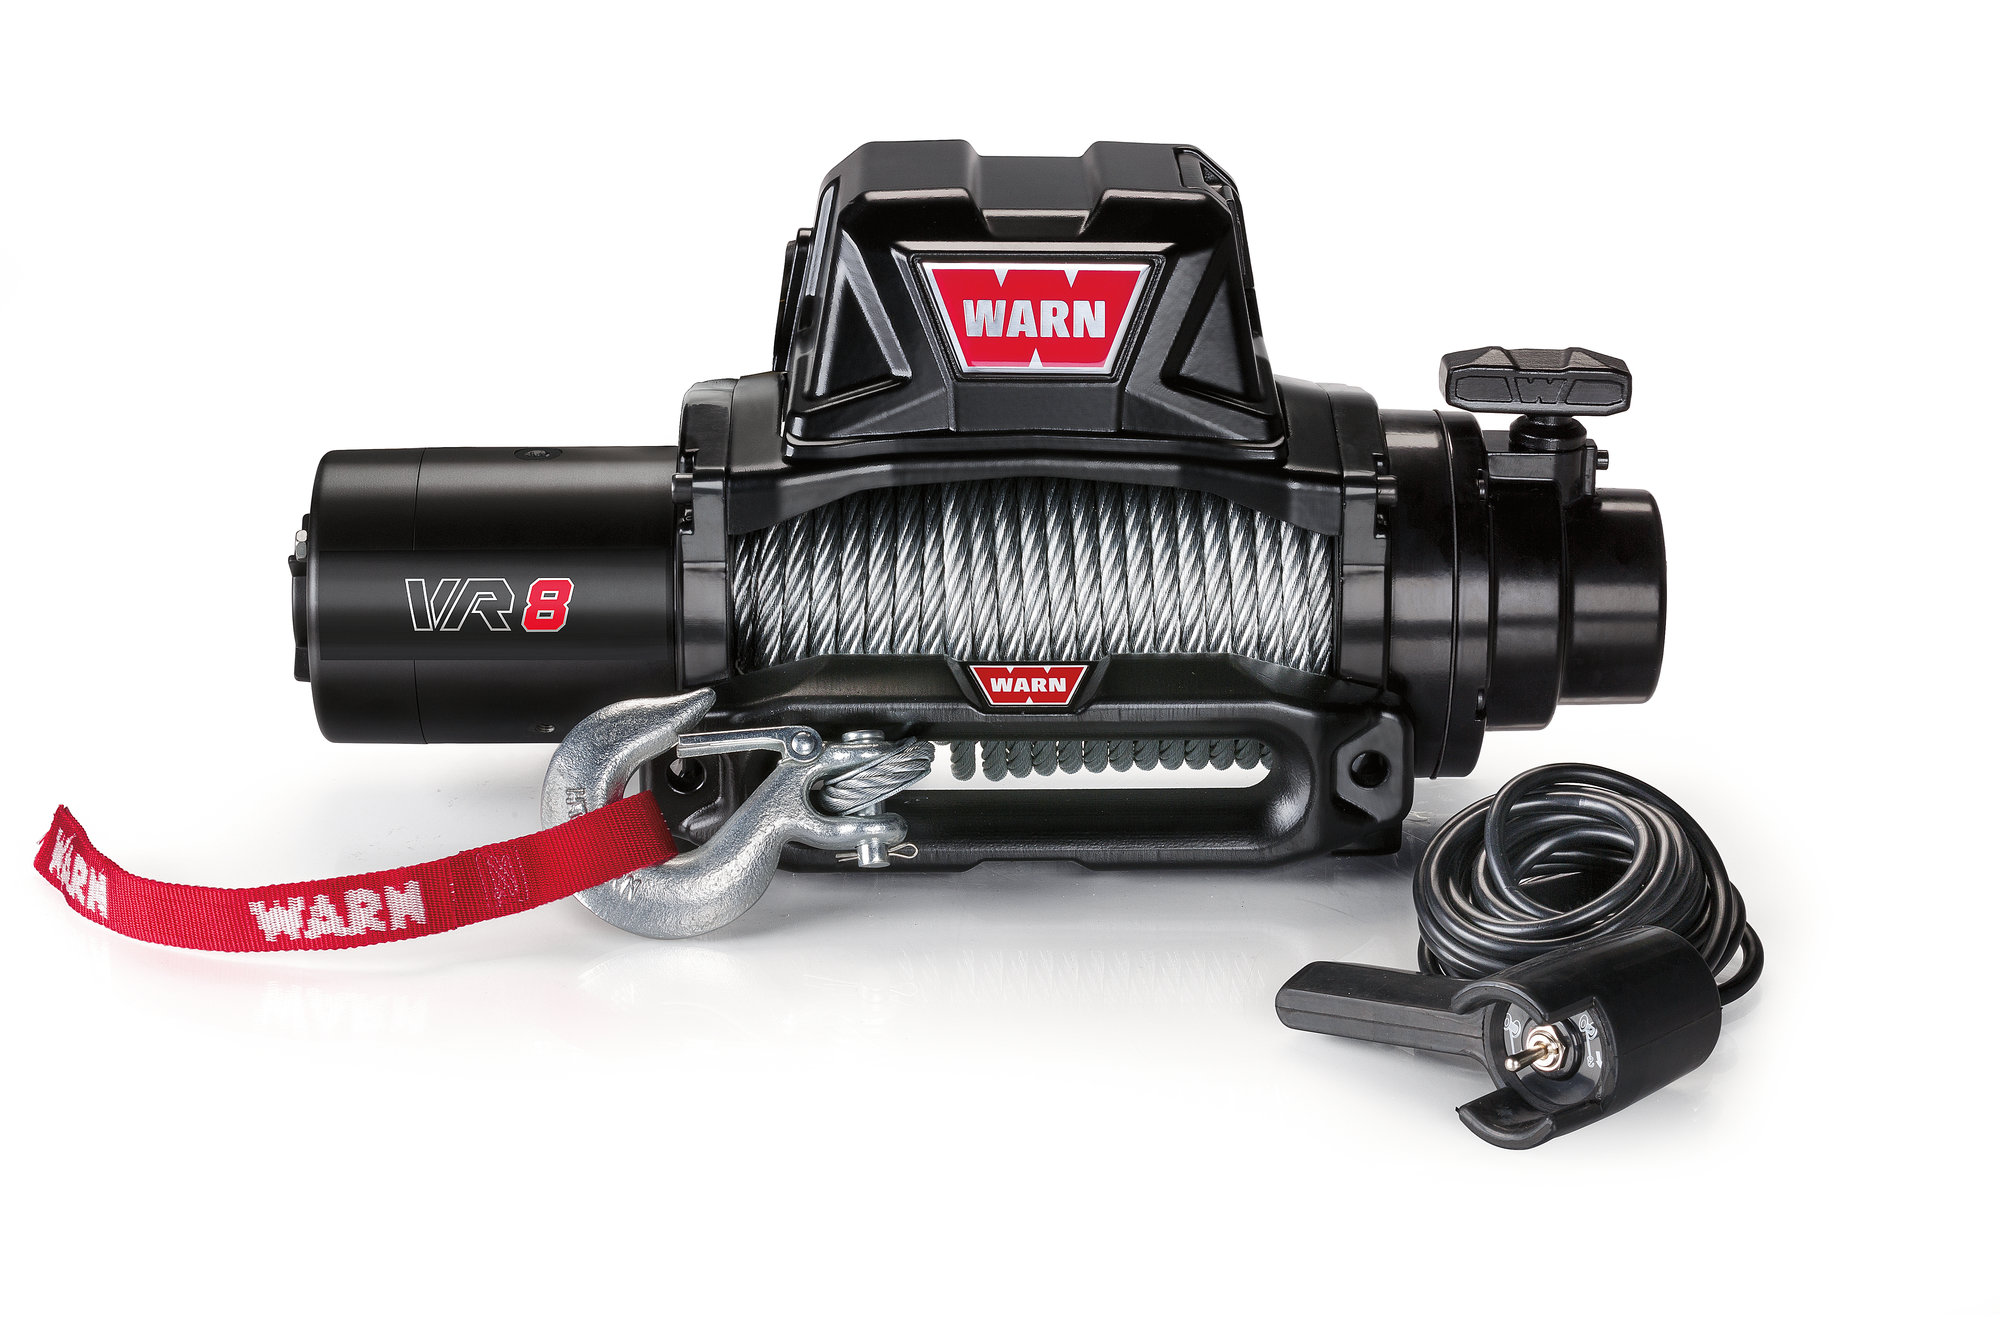 WARN 96800 VR8 Series 8000lb Winch?resize=665%2C443&ssl=1 wiring diagram for winch ramsey re 12000 old ramsey winch wiring ramsey re 12000 winch wiring diagram at virtualis.co